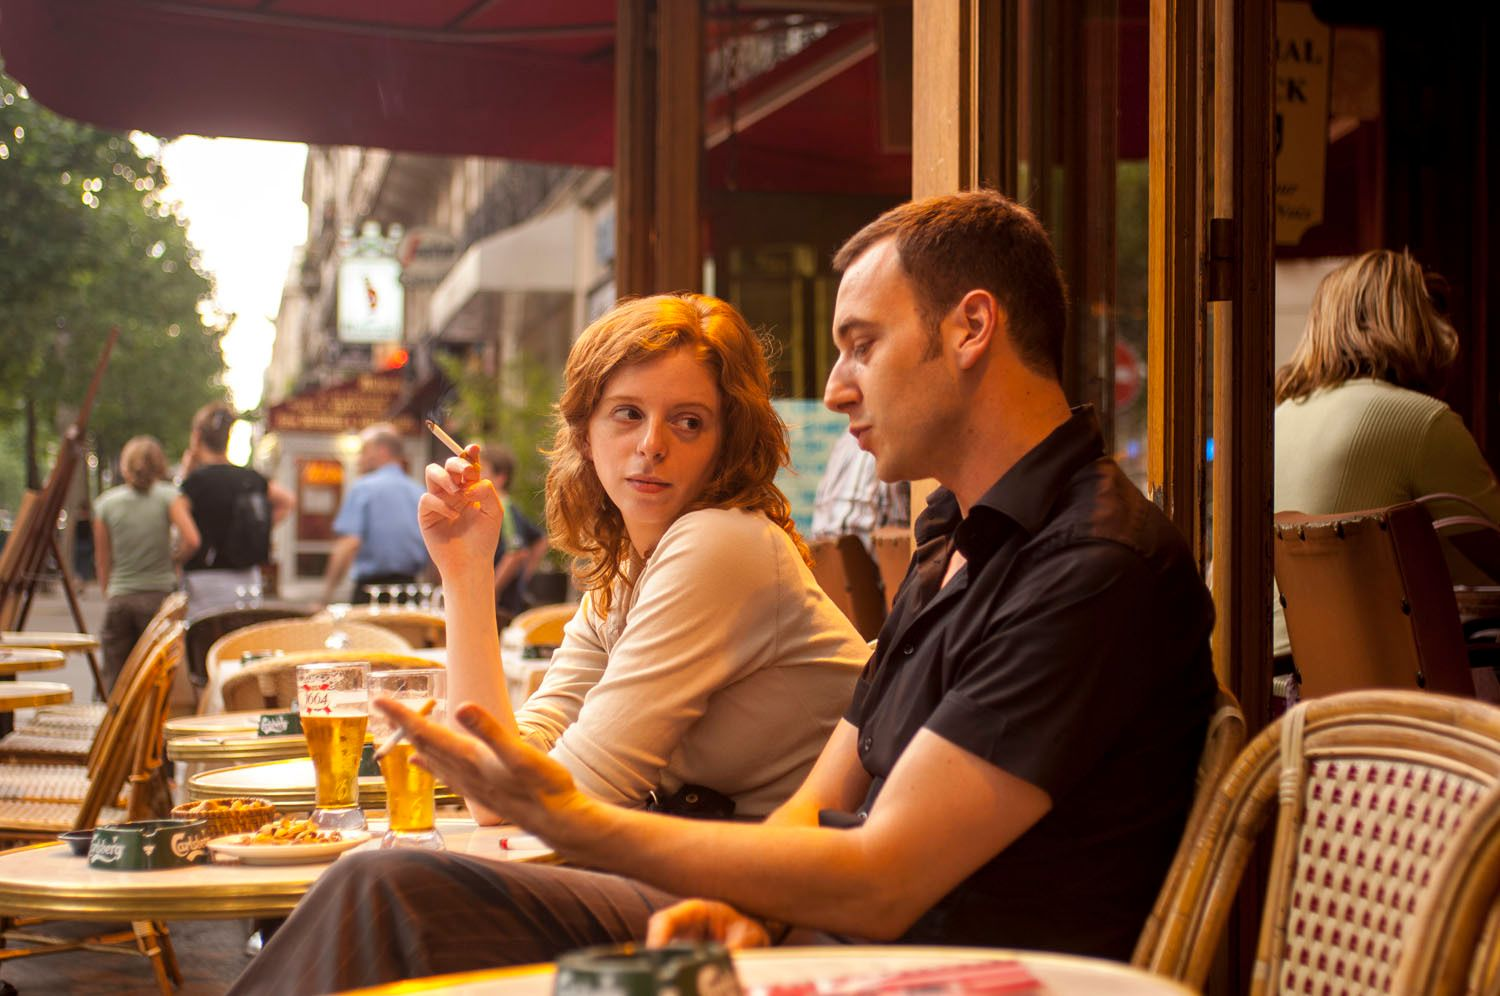 Couple Sitting at Outdoor Cafe in Paris